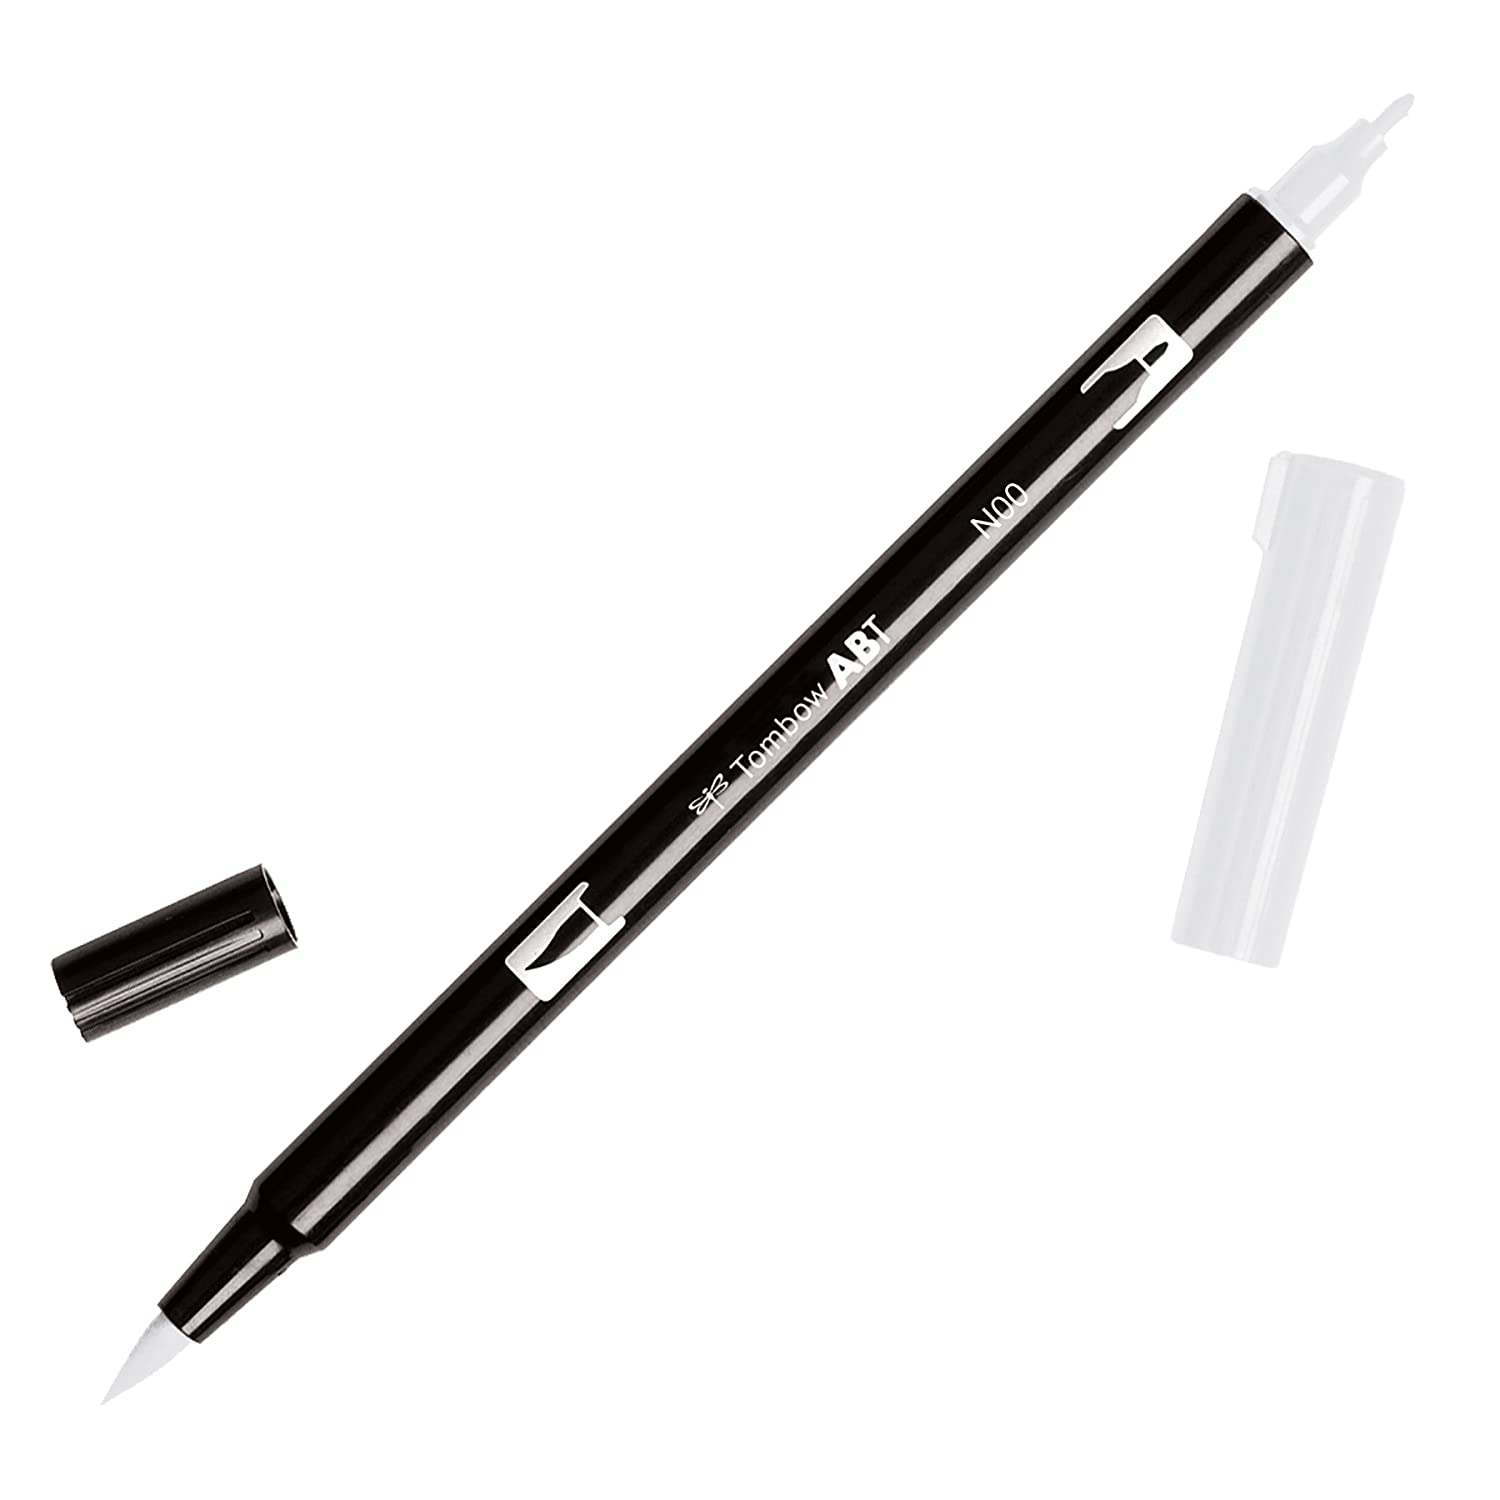 Tombow Dual Brush Pen Colorless Blender, N00, One Brush Pen, 56645 Tombow USA 56645-S